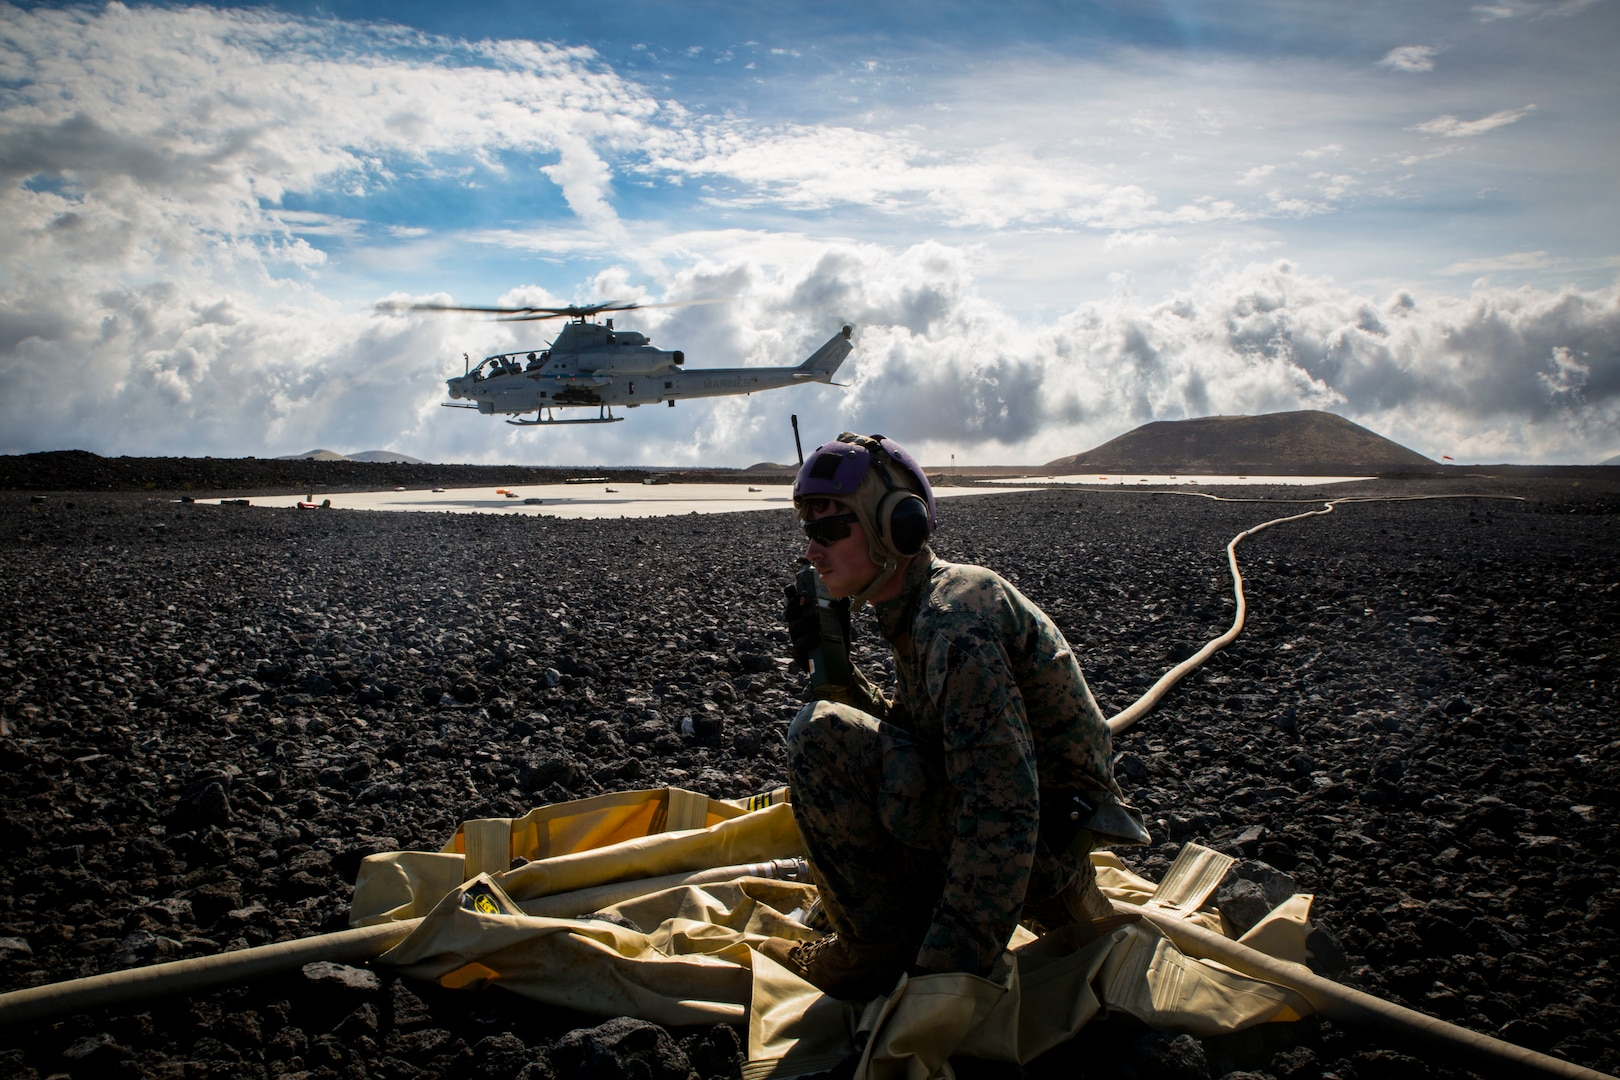 U.S. Marines and Army conduct fuel experiment during RIMPAC